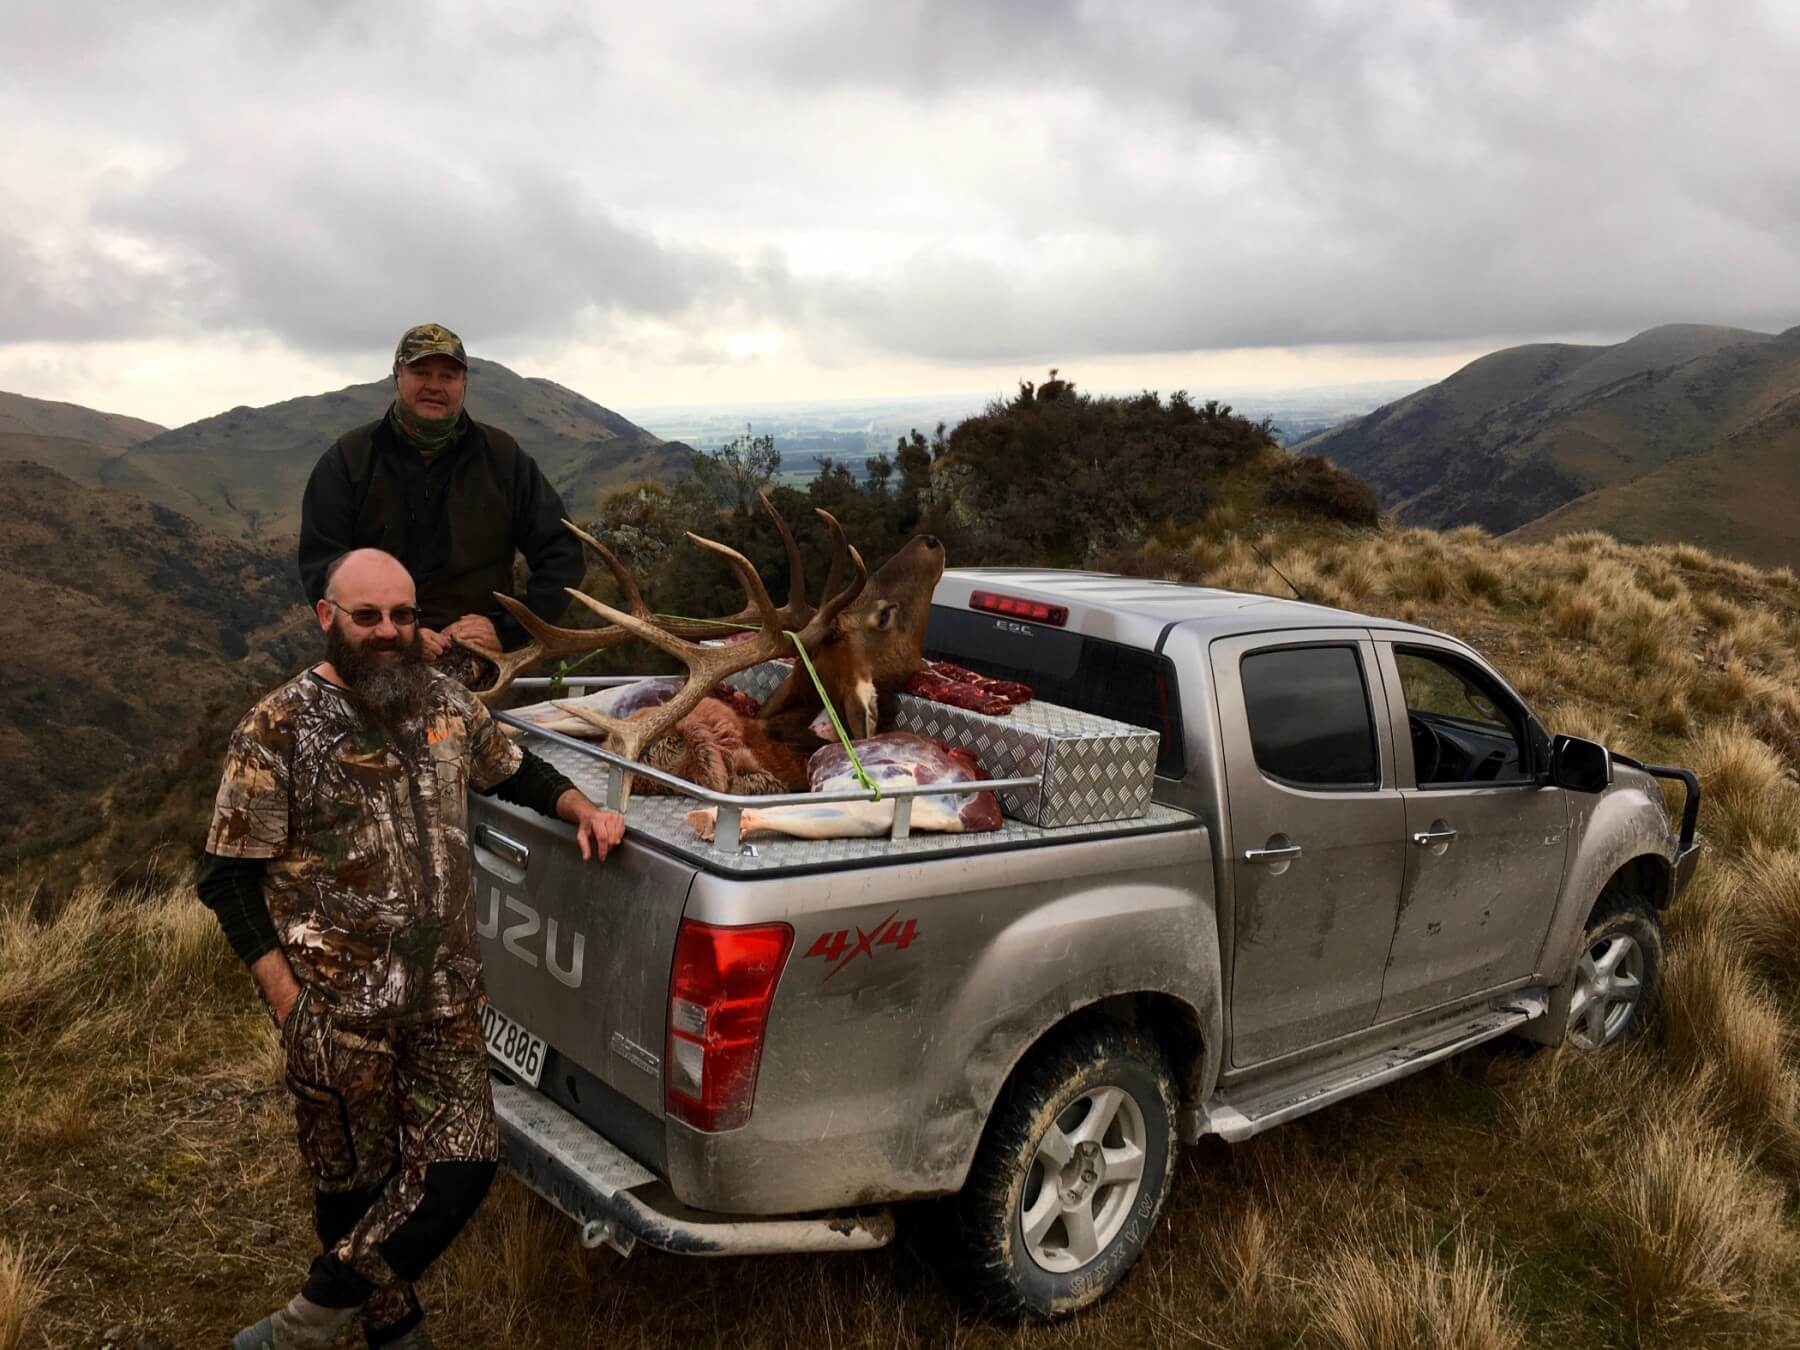 elk hunters with trophy on truck